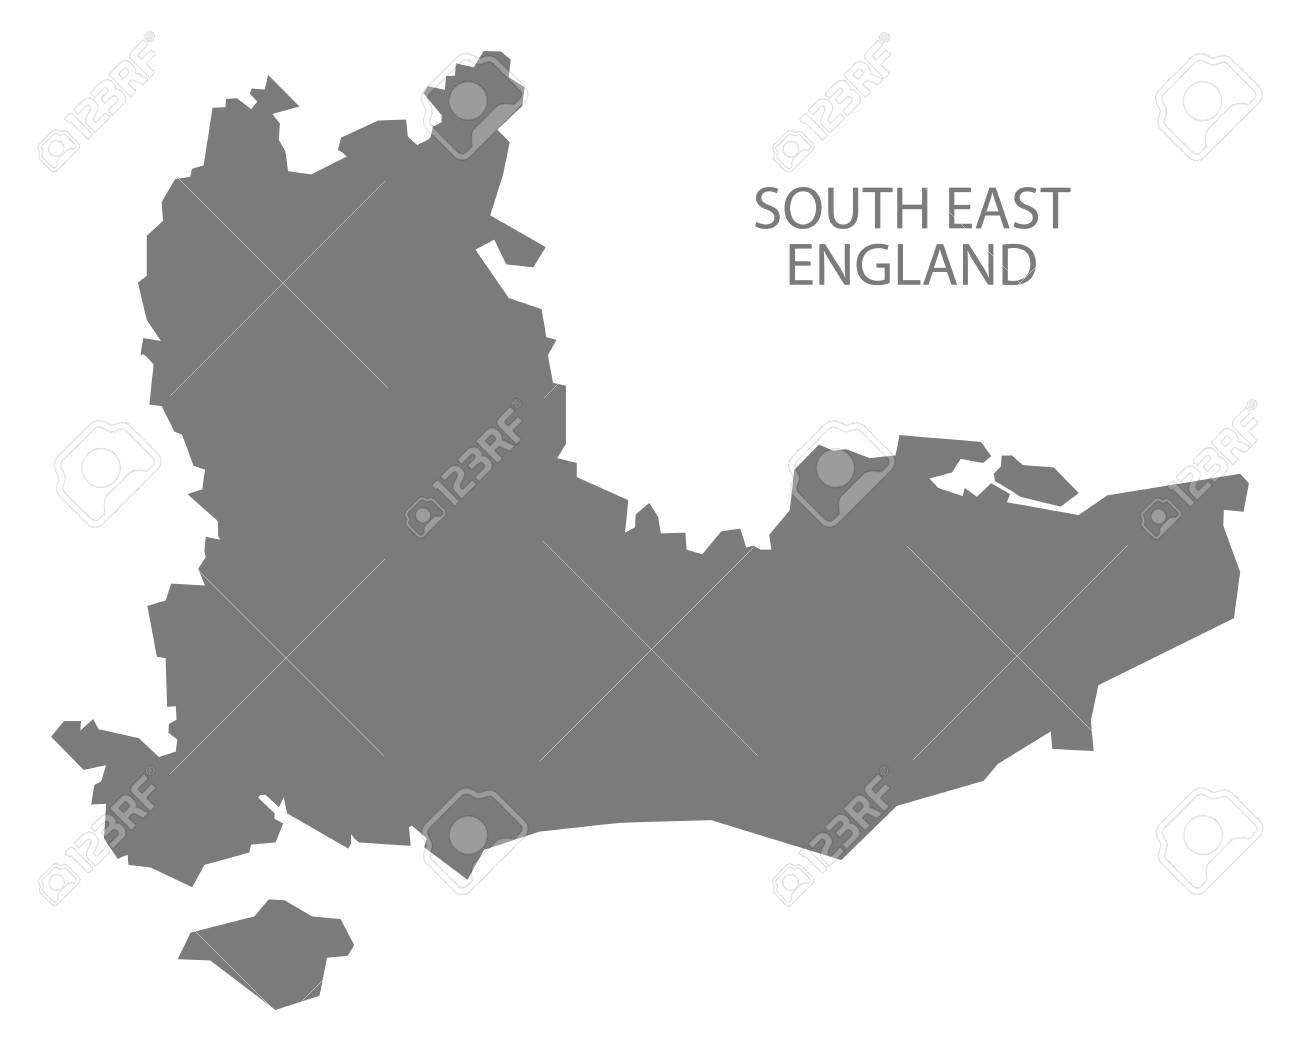 Map Of South East England Counties.Grey County Map Of England South East England Royalty Free Cliparts